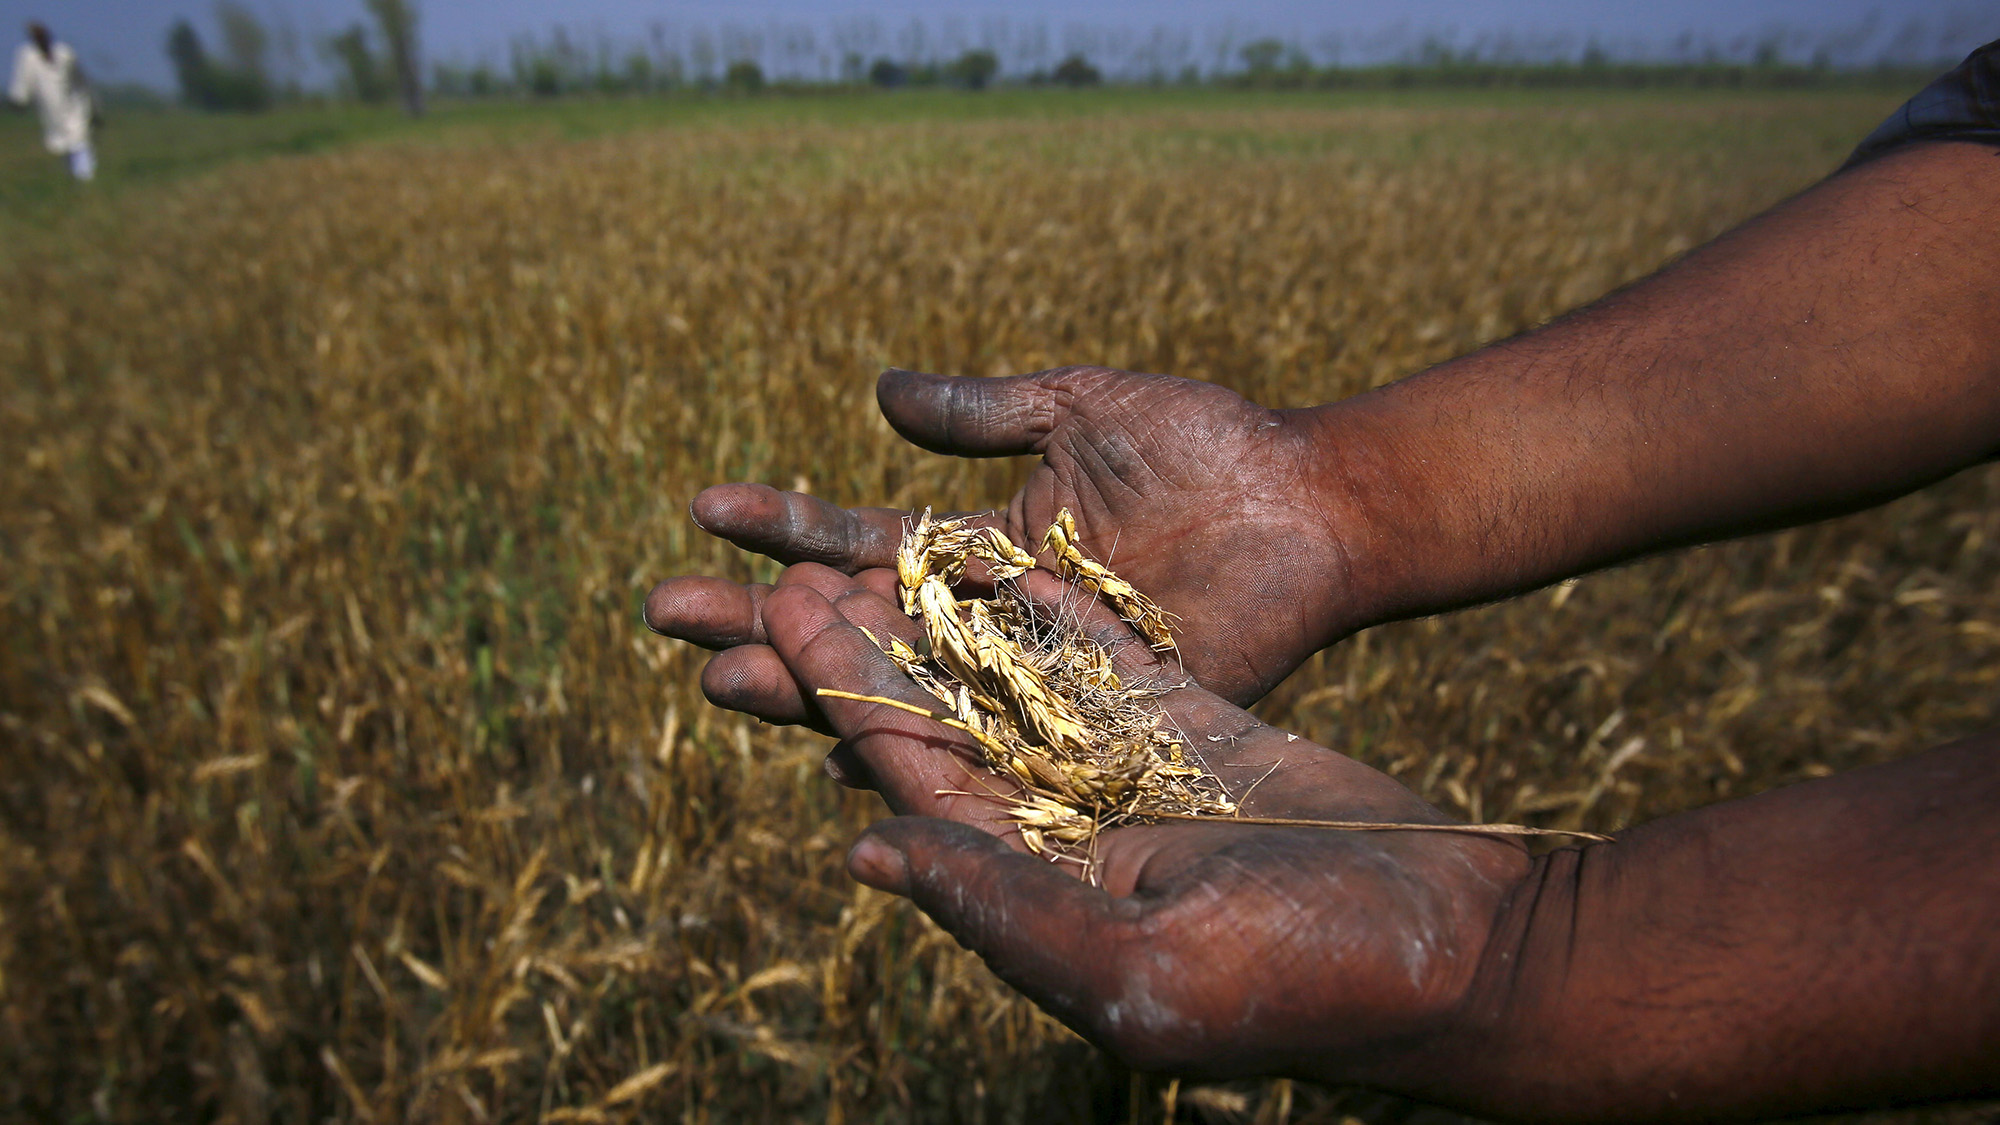 A farmer shows wheat crop damaged by unseasonal rains in his wheat field at Sisola Khurd village in the northern Indian state of Uttar Pradesh, March 24, 2015. To match Insight INDIA-MODI/  Picture taken March 24, 2015. REUTERS/Anindito Mukherjee - RTR4VB66